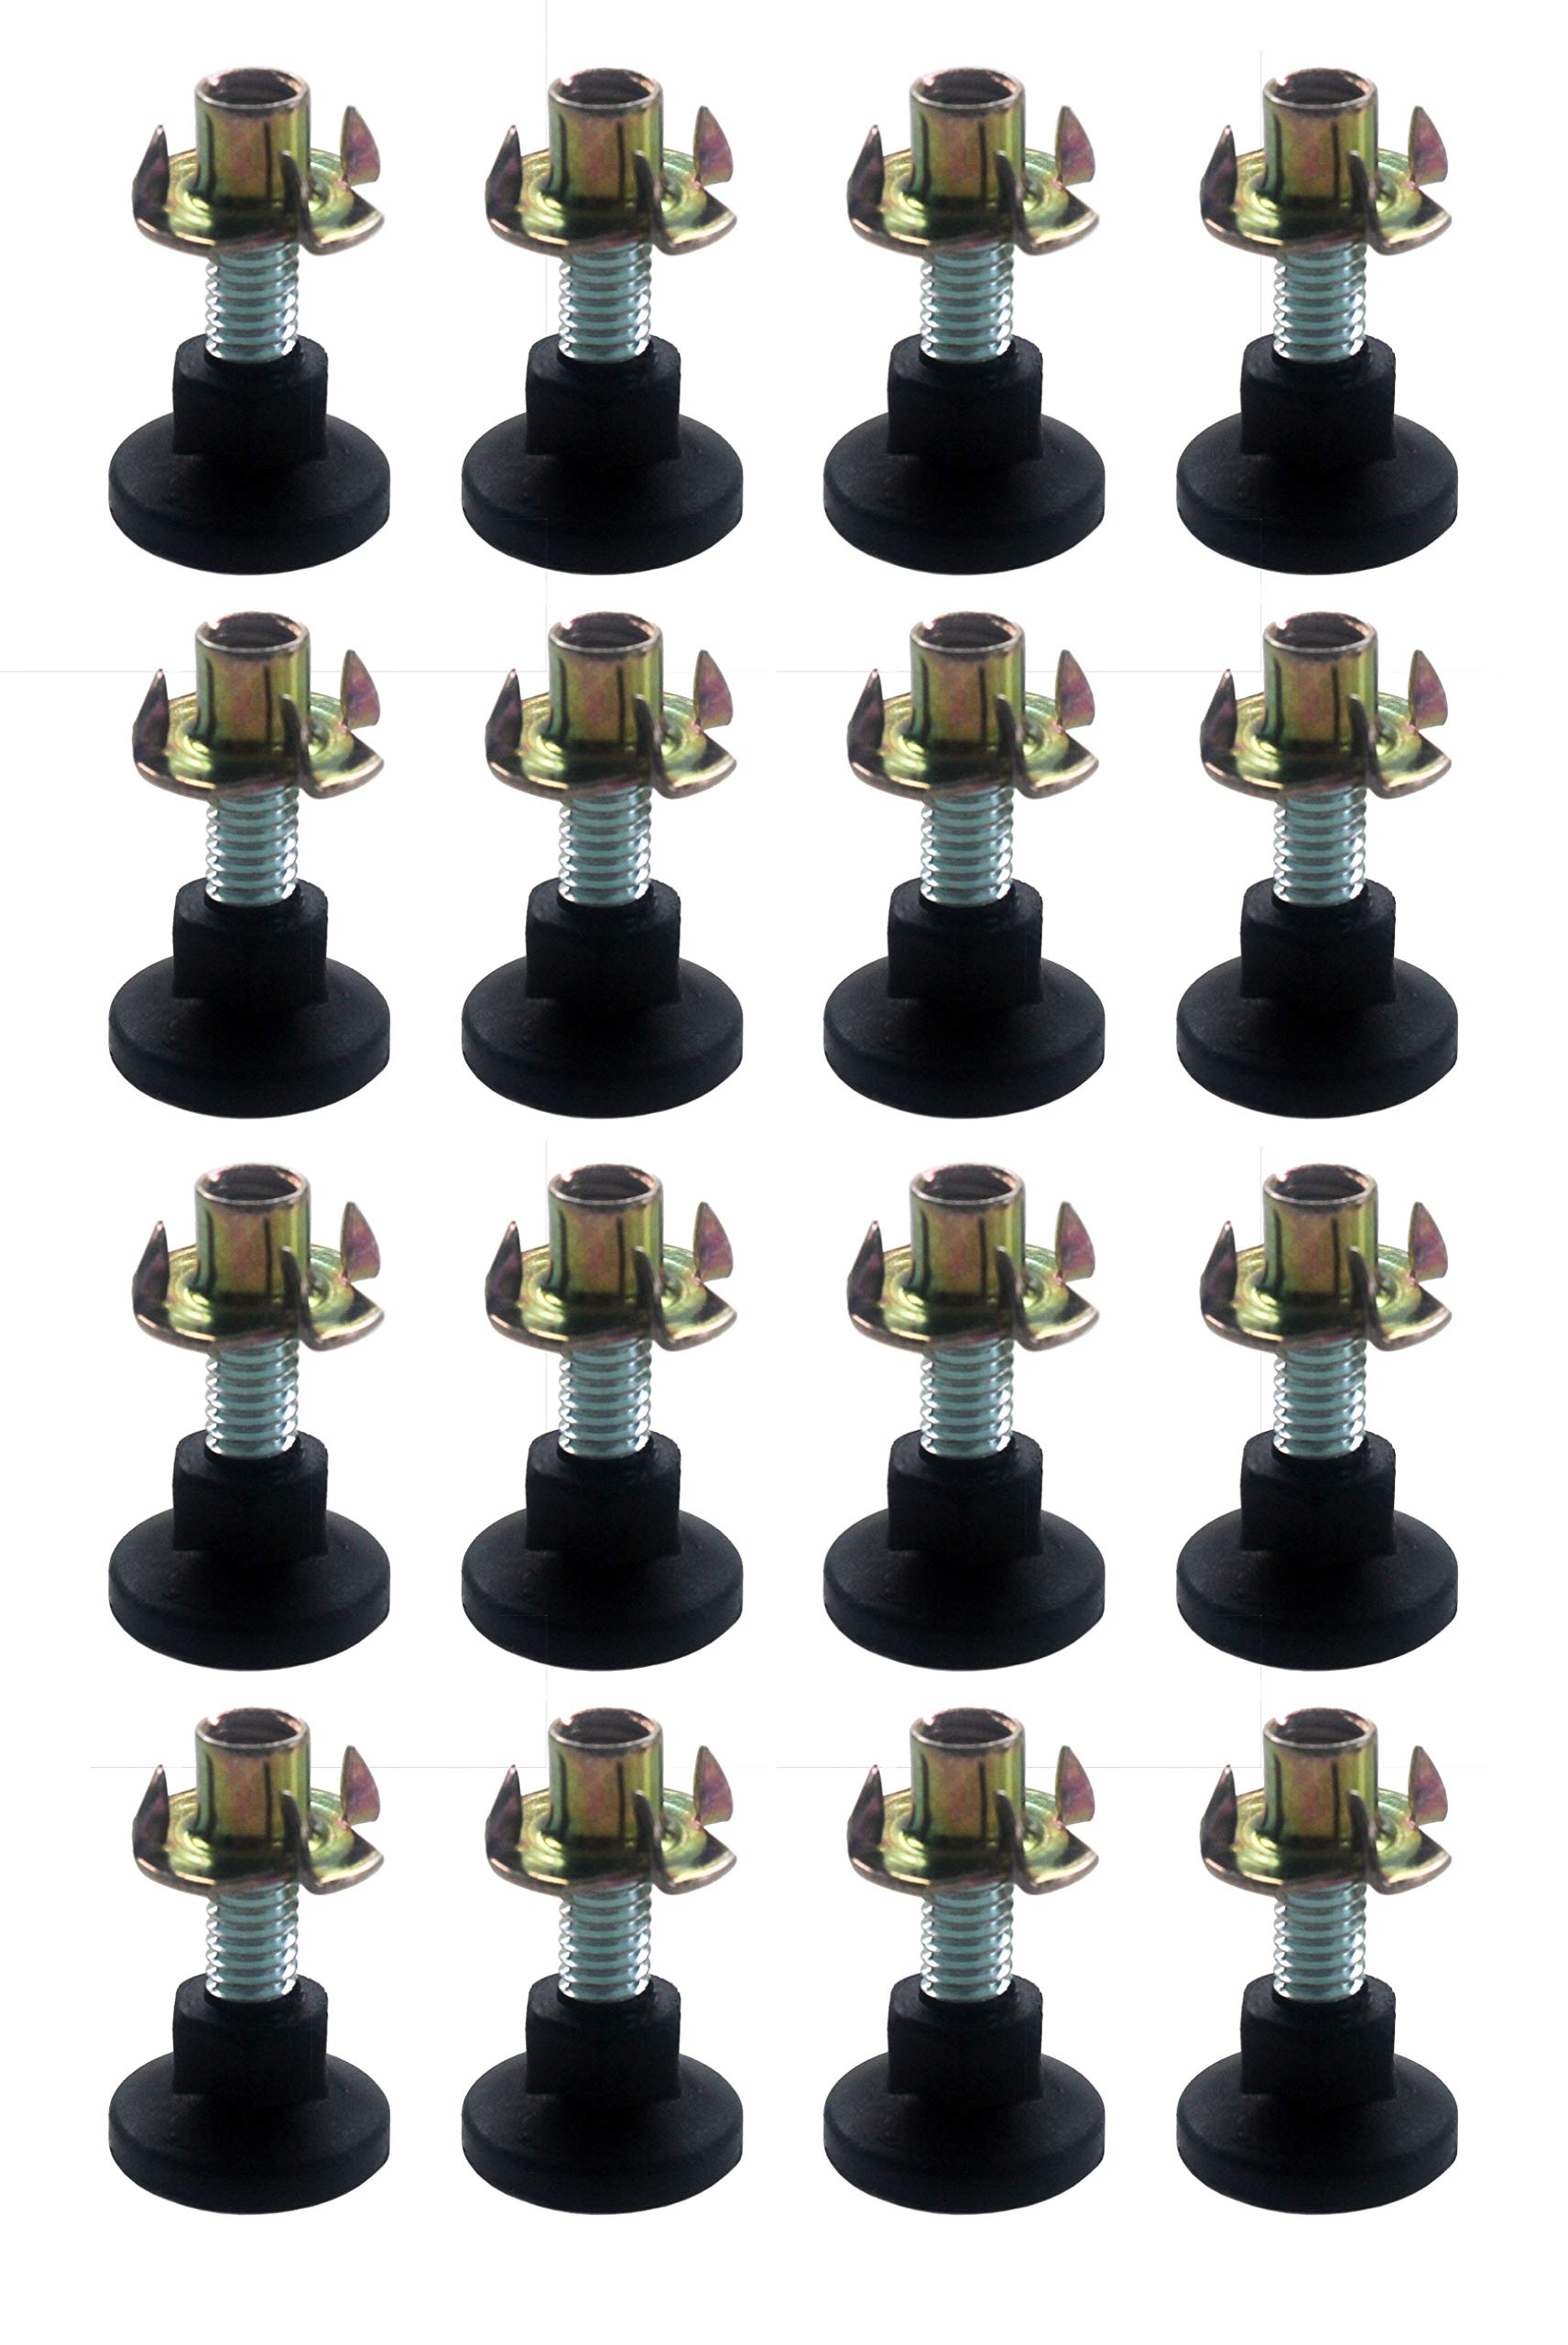 Heavy Duty Adjustable Leg Leveling Glides for Furniture 12 Pack